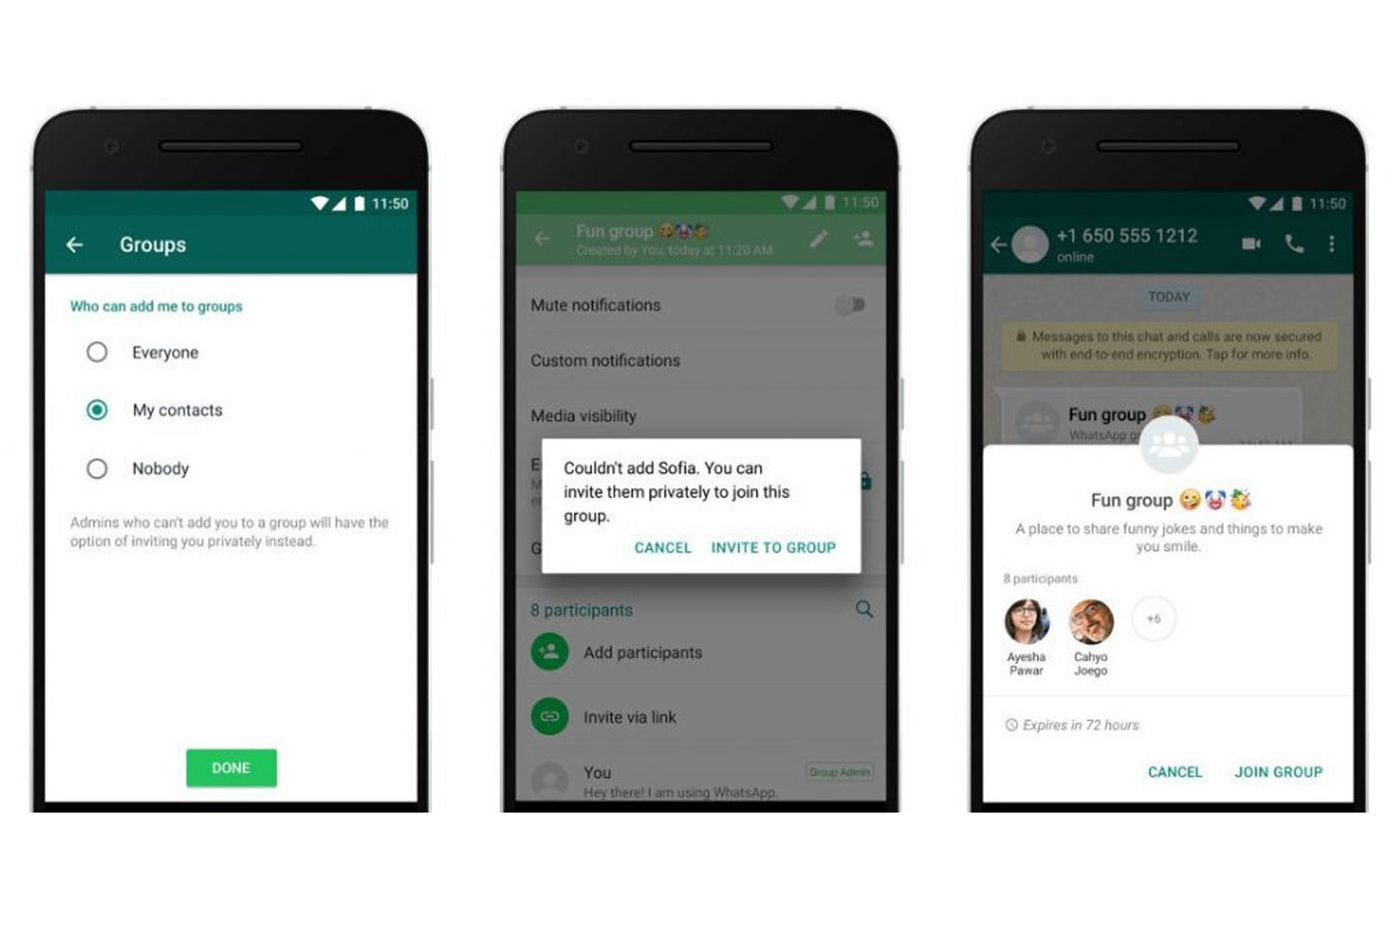 WhatsApp now lets you control who can add you to groups - The Verge